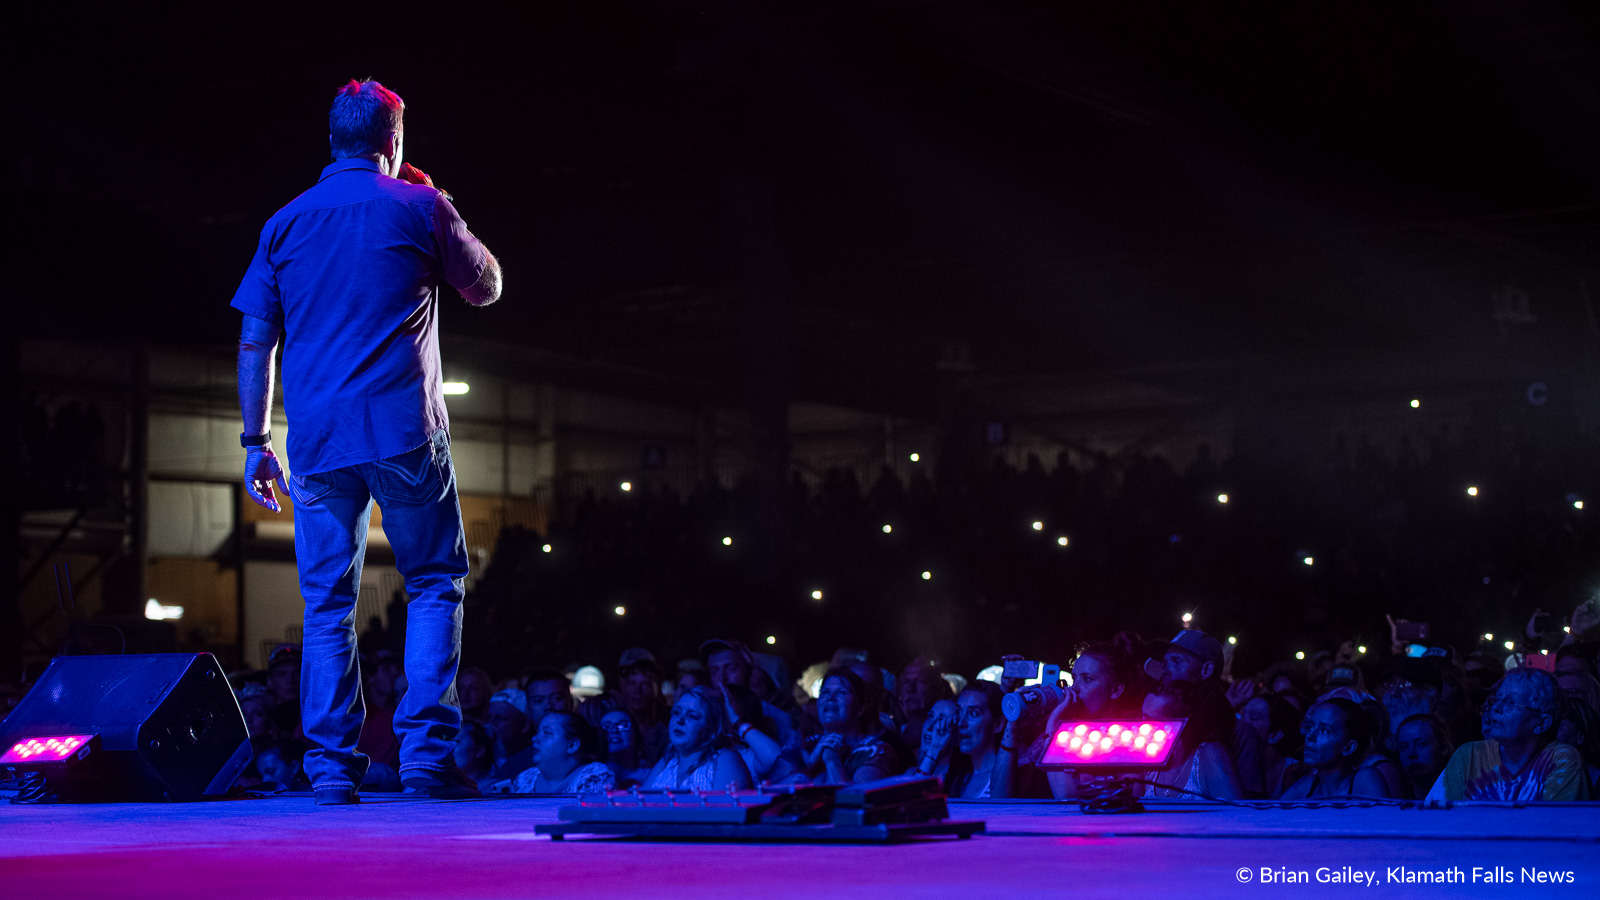 Lonestar performs for a packed house at the 2019 Klamath County Fair. August 3, 2019 (Image, Brian Gailey / Klamath Falls News)